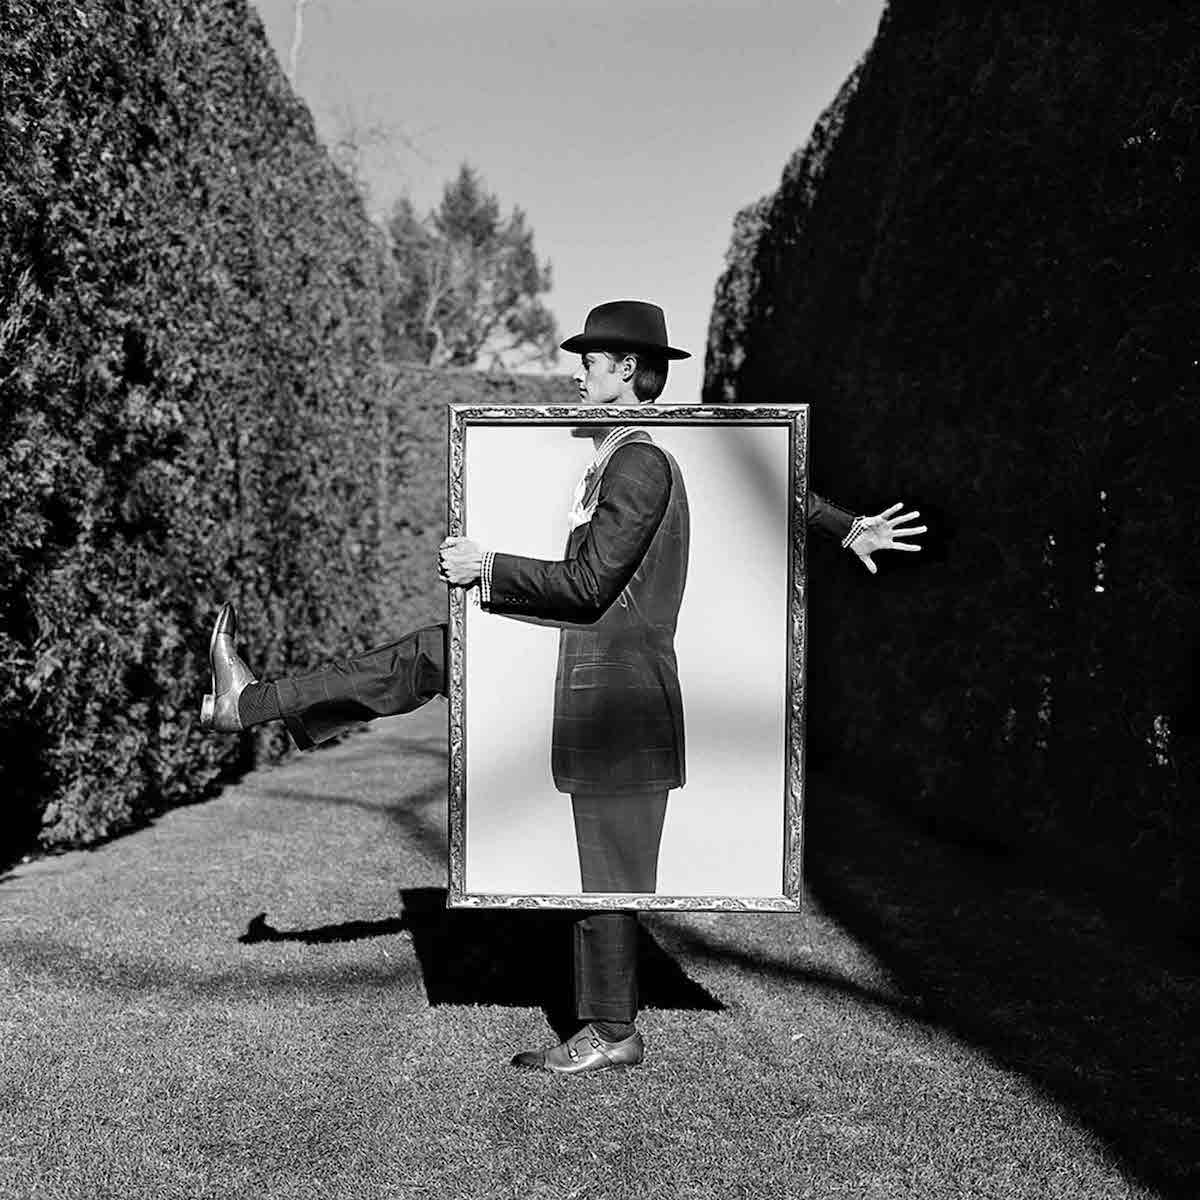 Rodney-Smith-Fine-Art-Photography-14.jpg